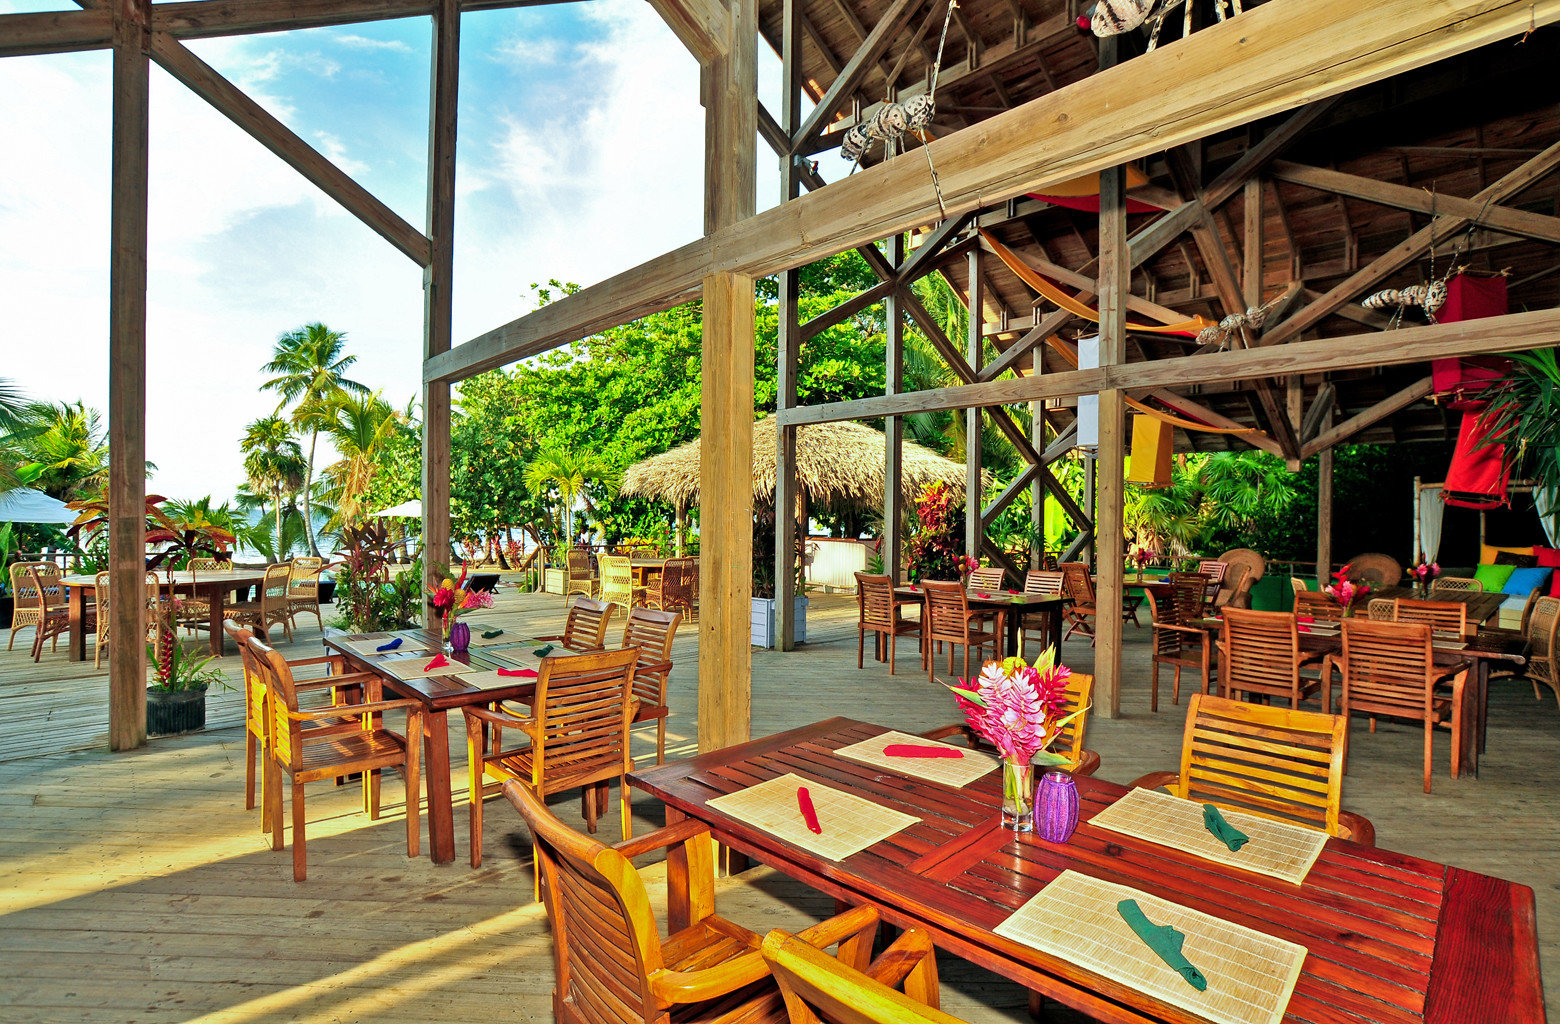 Cultural Dining Drink Eat Eco Island Jungle Outdoors building leisure Resort restaurant set